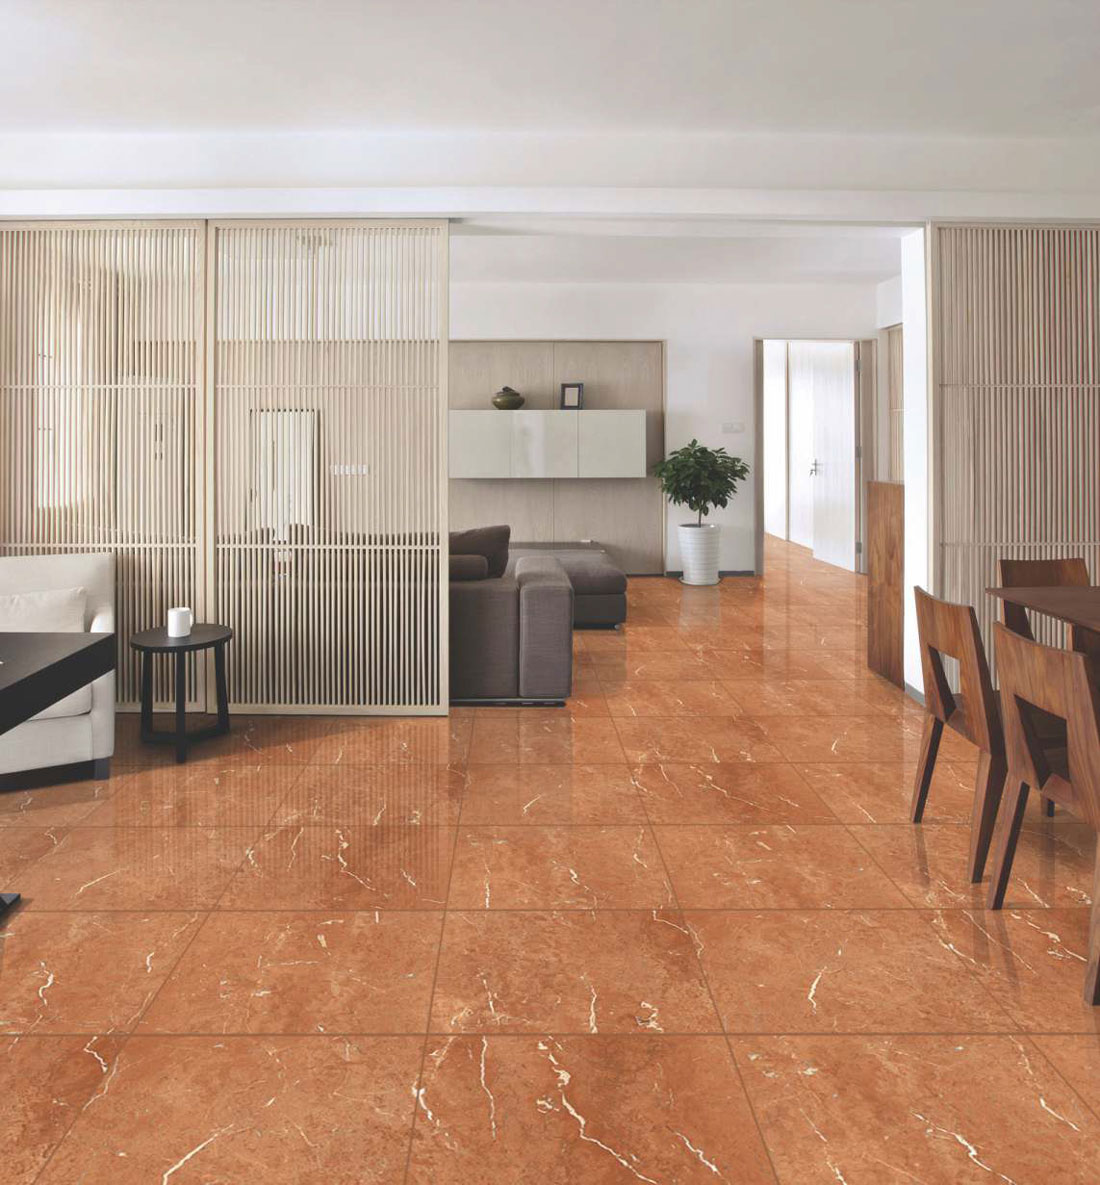 Vitrified glazed tiles